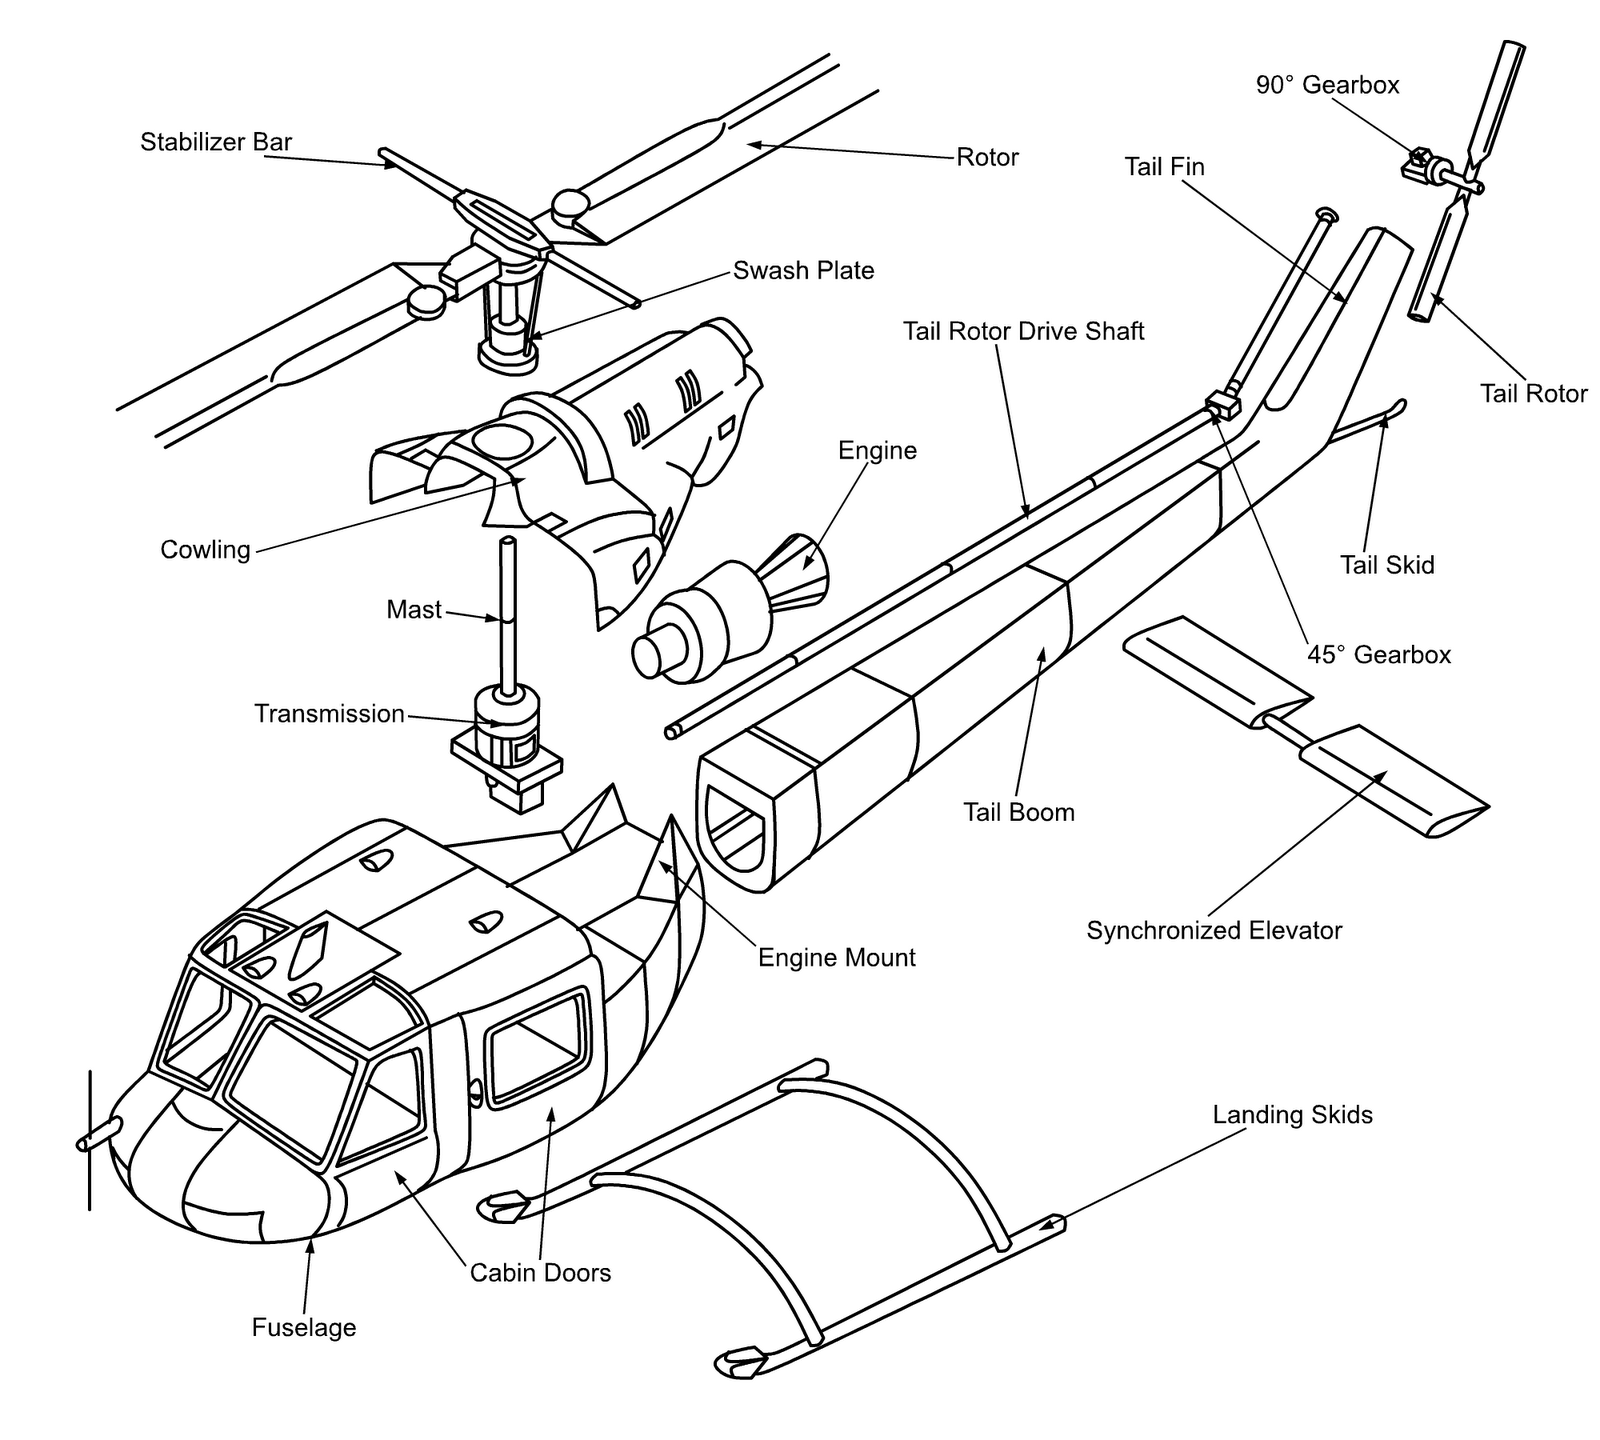 Cb750 Simplified Wiring Diagram additionally Shovelhead Chopper Wiring Diagram further Cub Cadet Mower Deck Parts Diagram in addition Harley Davidson Wiring Harness Diagram Wp105 besides Parts Of Helicopter. on simple chopper wiring diagram